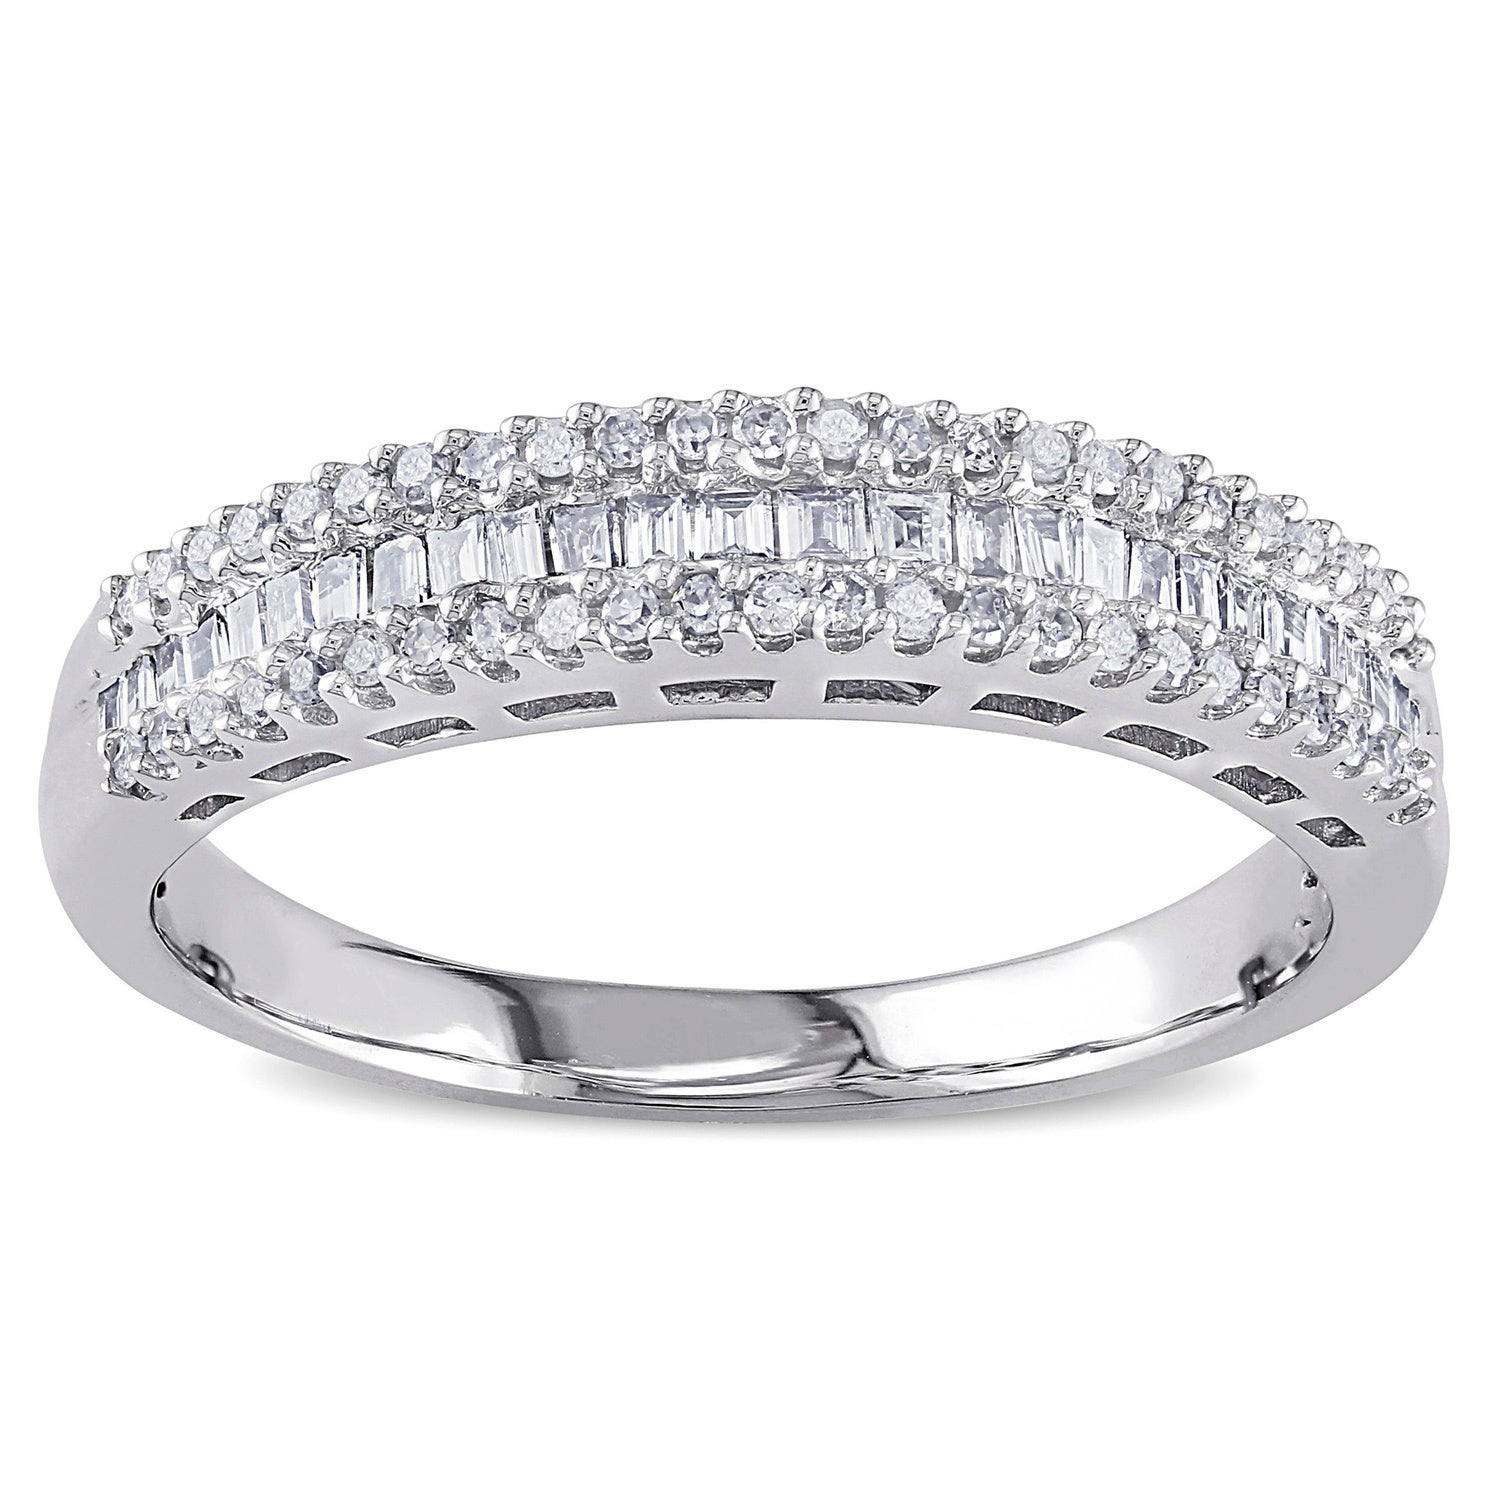 Miadora 14K White Gold 1/3Ct Tdw Baguette Diamond Anniversary Band With Most Recent Round And Baguette Diamond Anniversary Bands In White Gold (View 14 of 25)